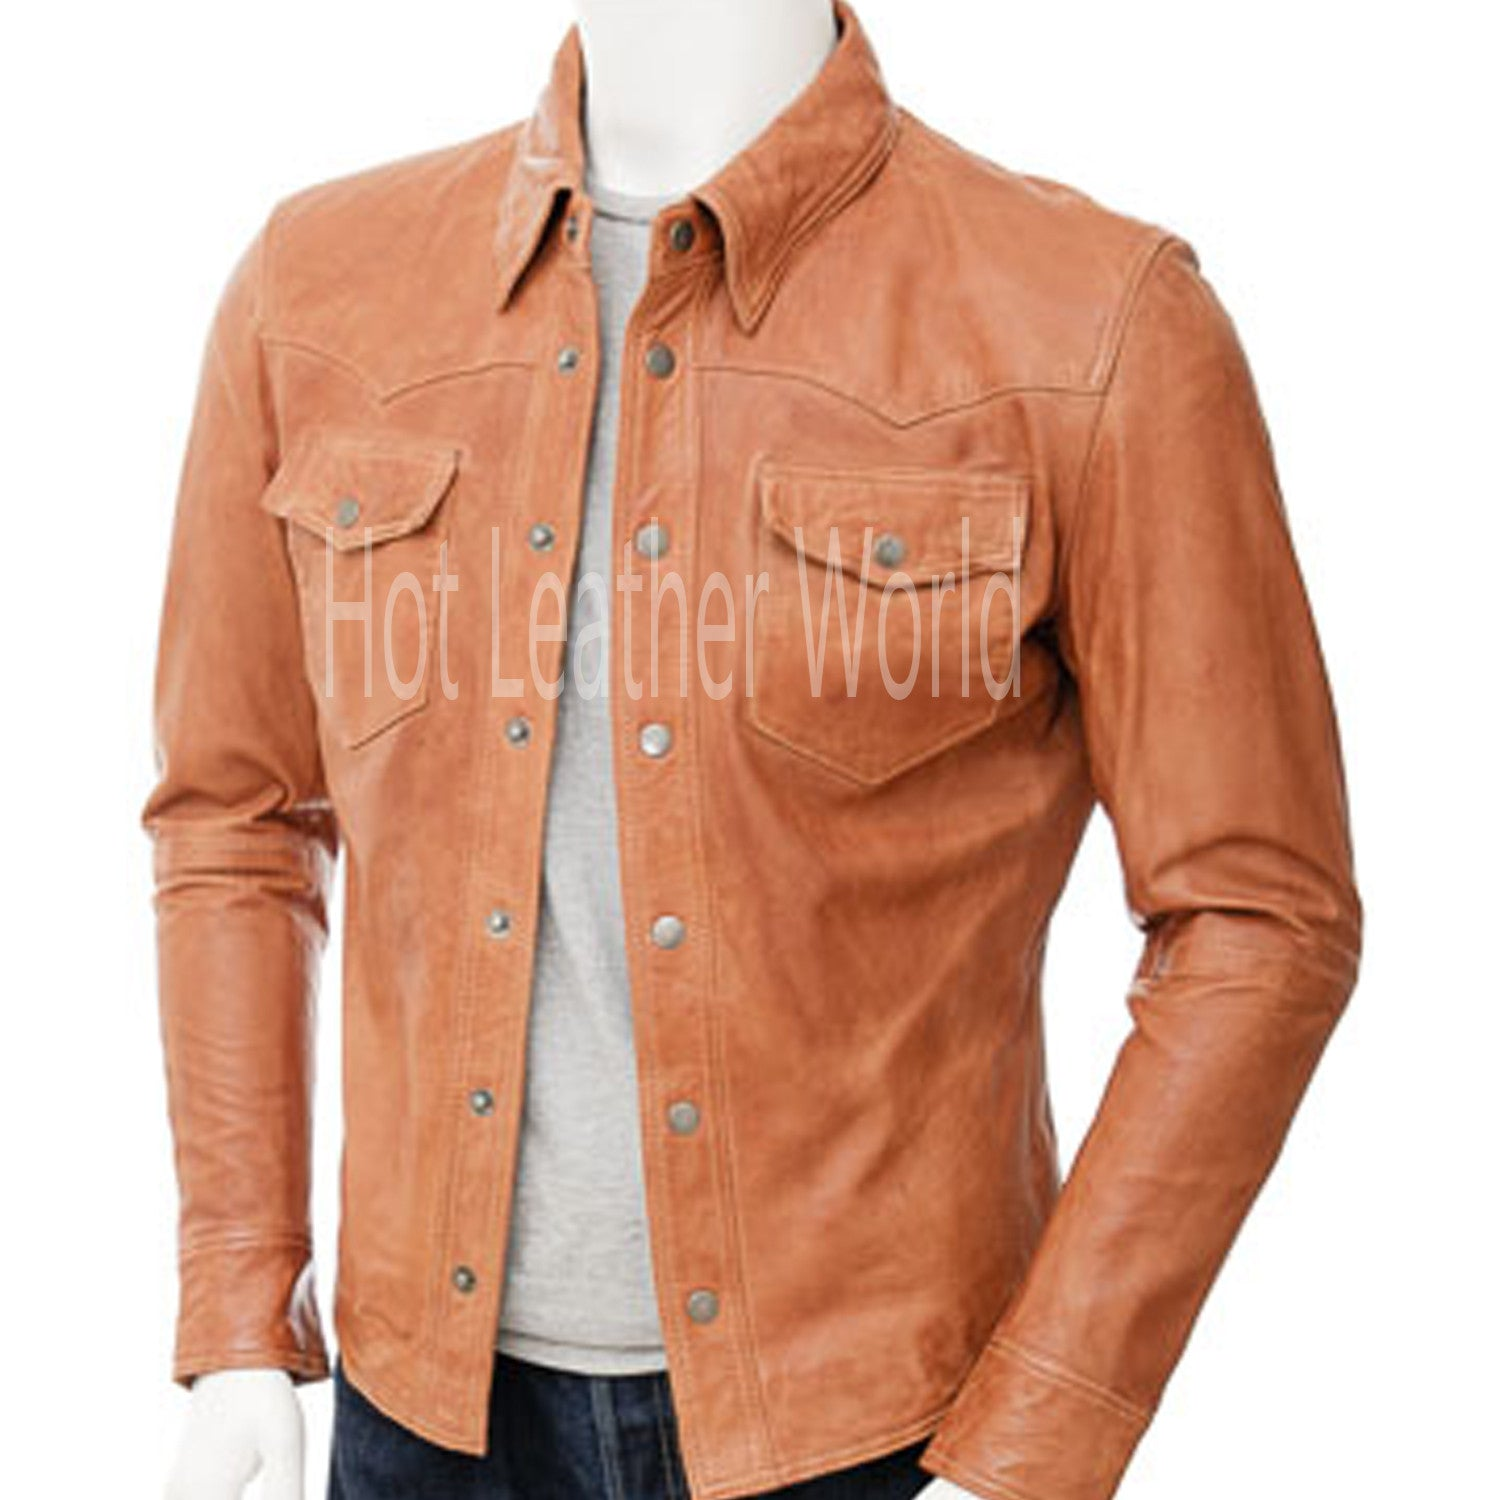 Mens Tan Leather Blazer -  HOTLEATHERWORLD